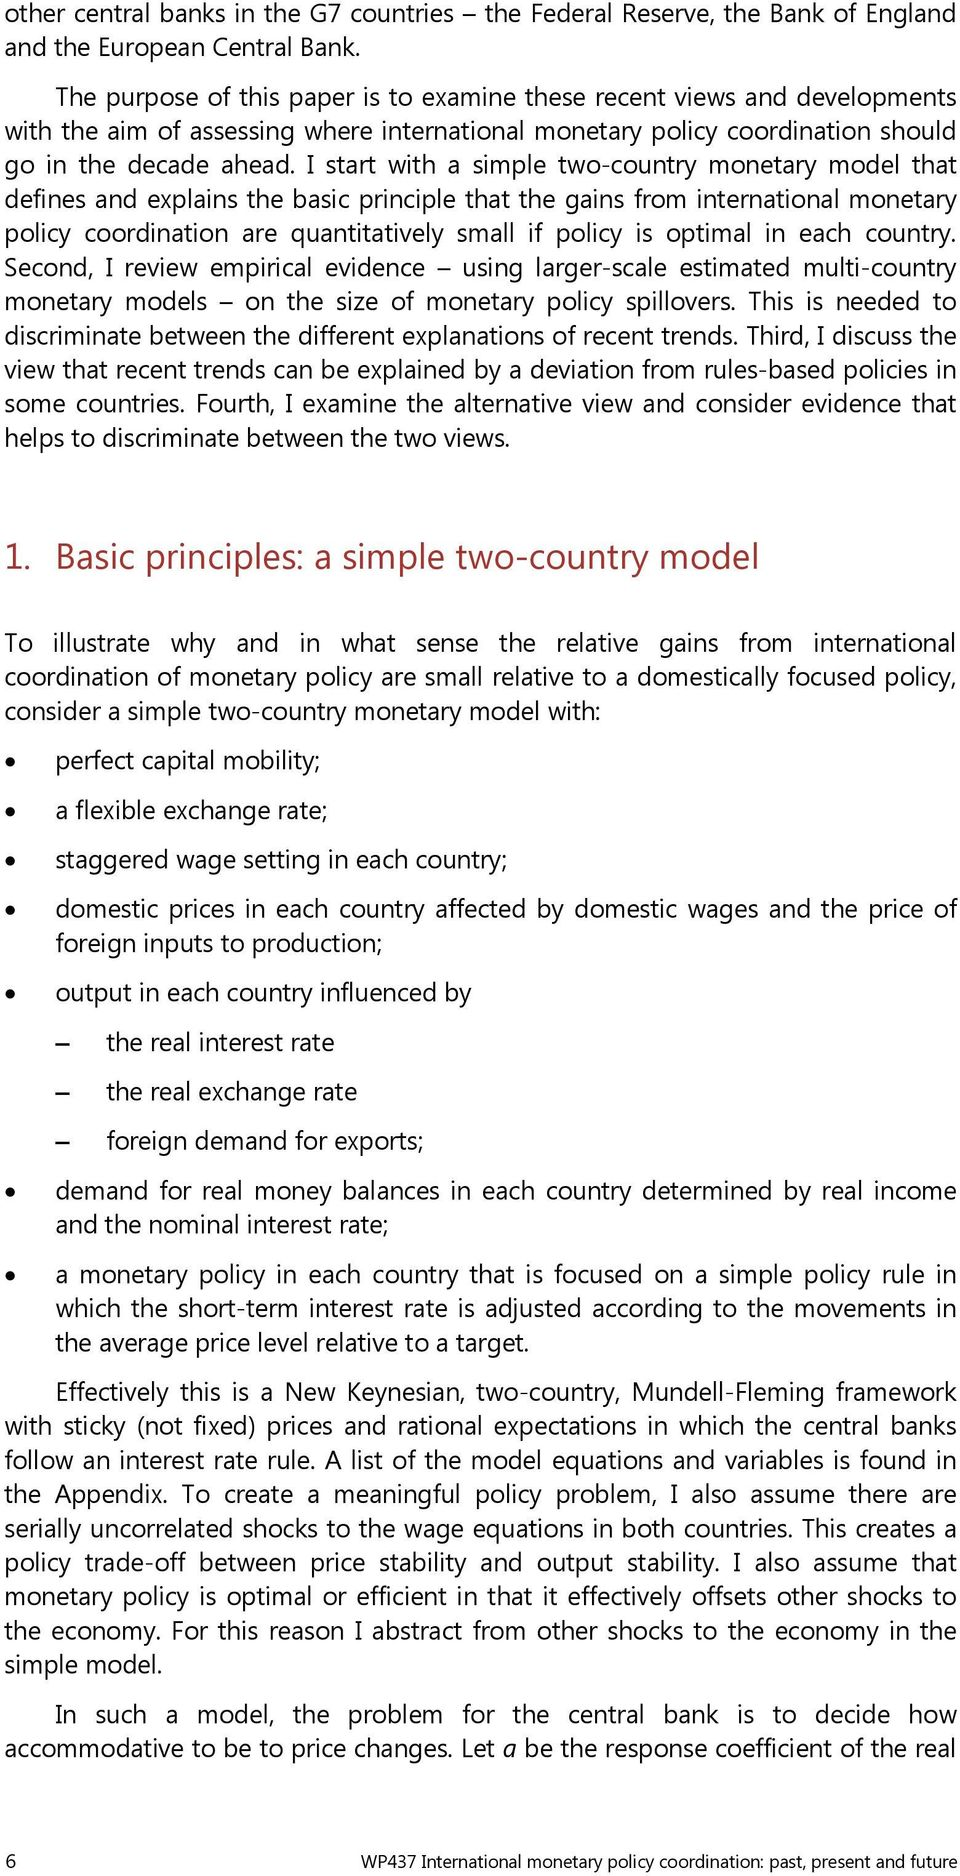 I start with a simple two-country monetary model that defines and explains the basic principle that the gains from international monetary policy coordination are quantitatively small if policy is